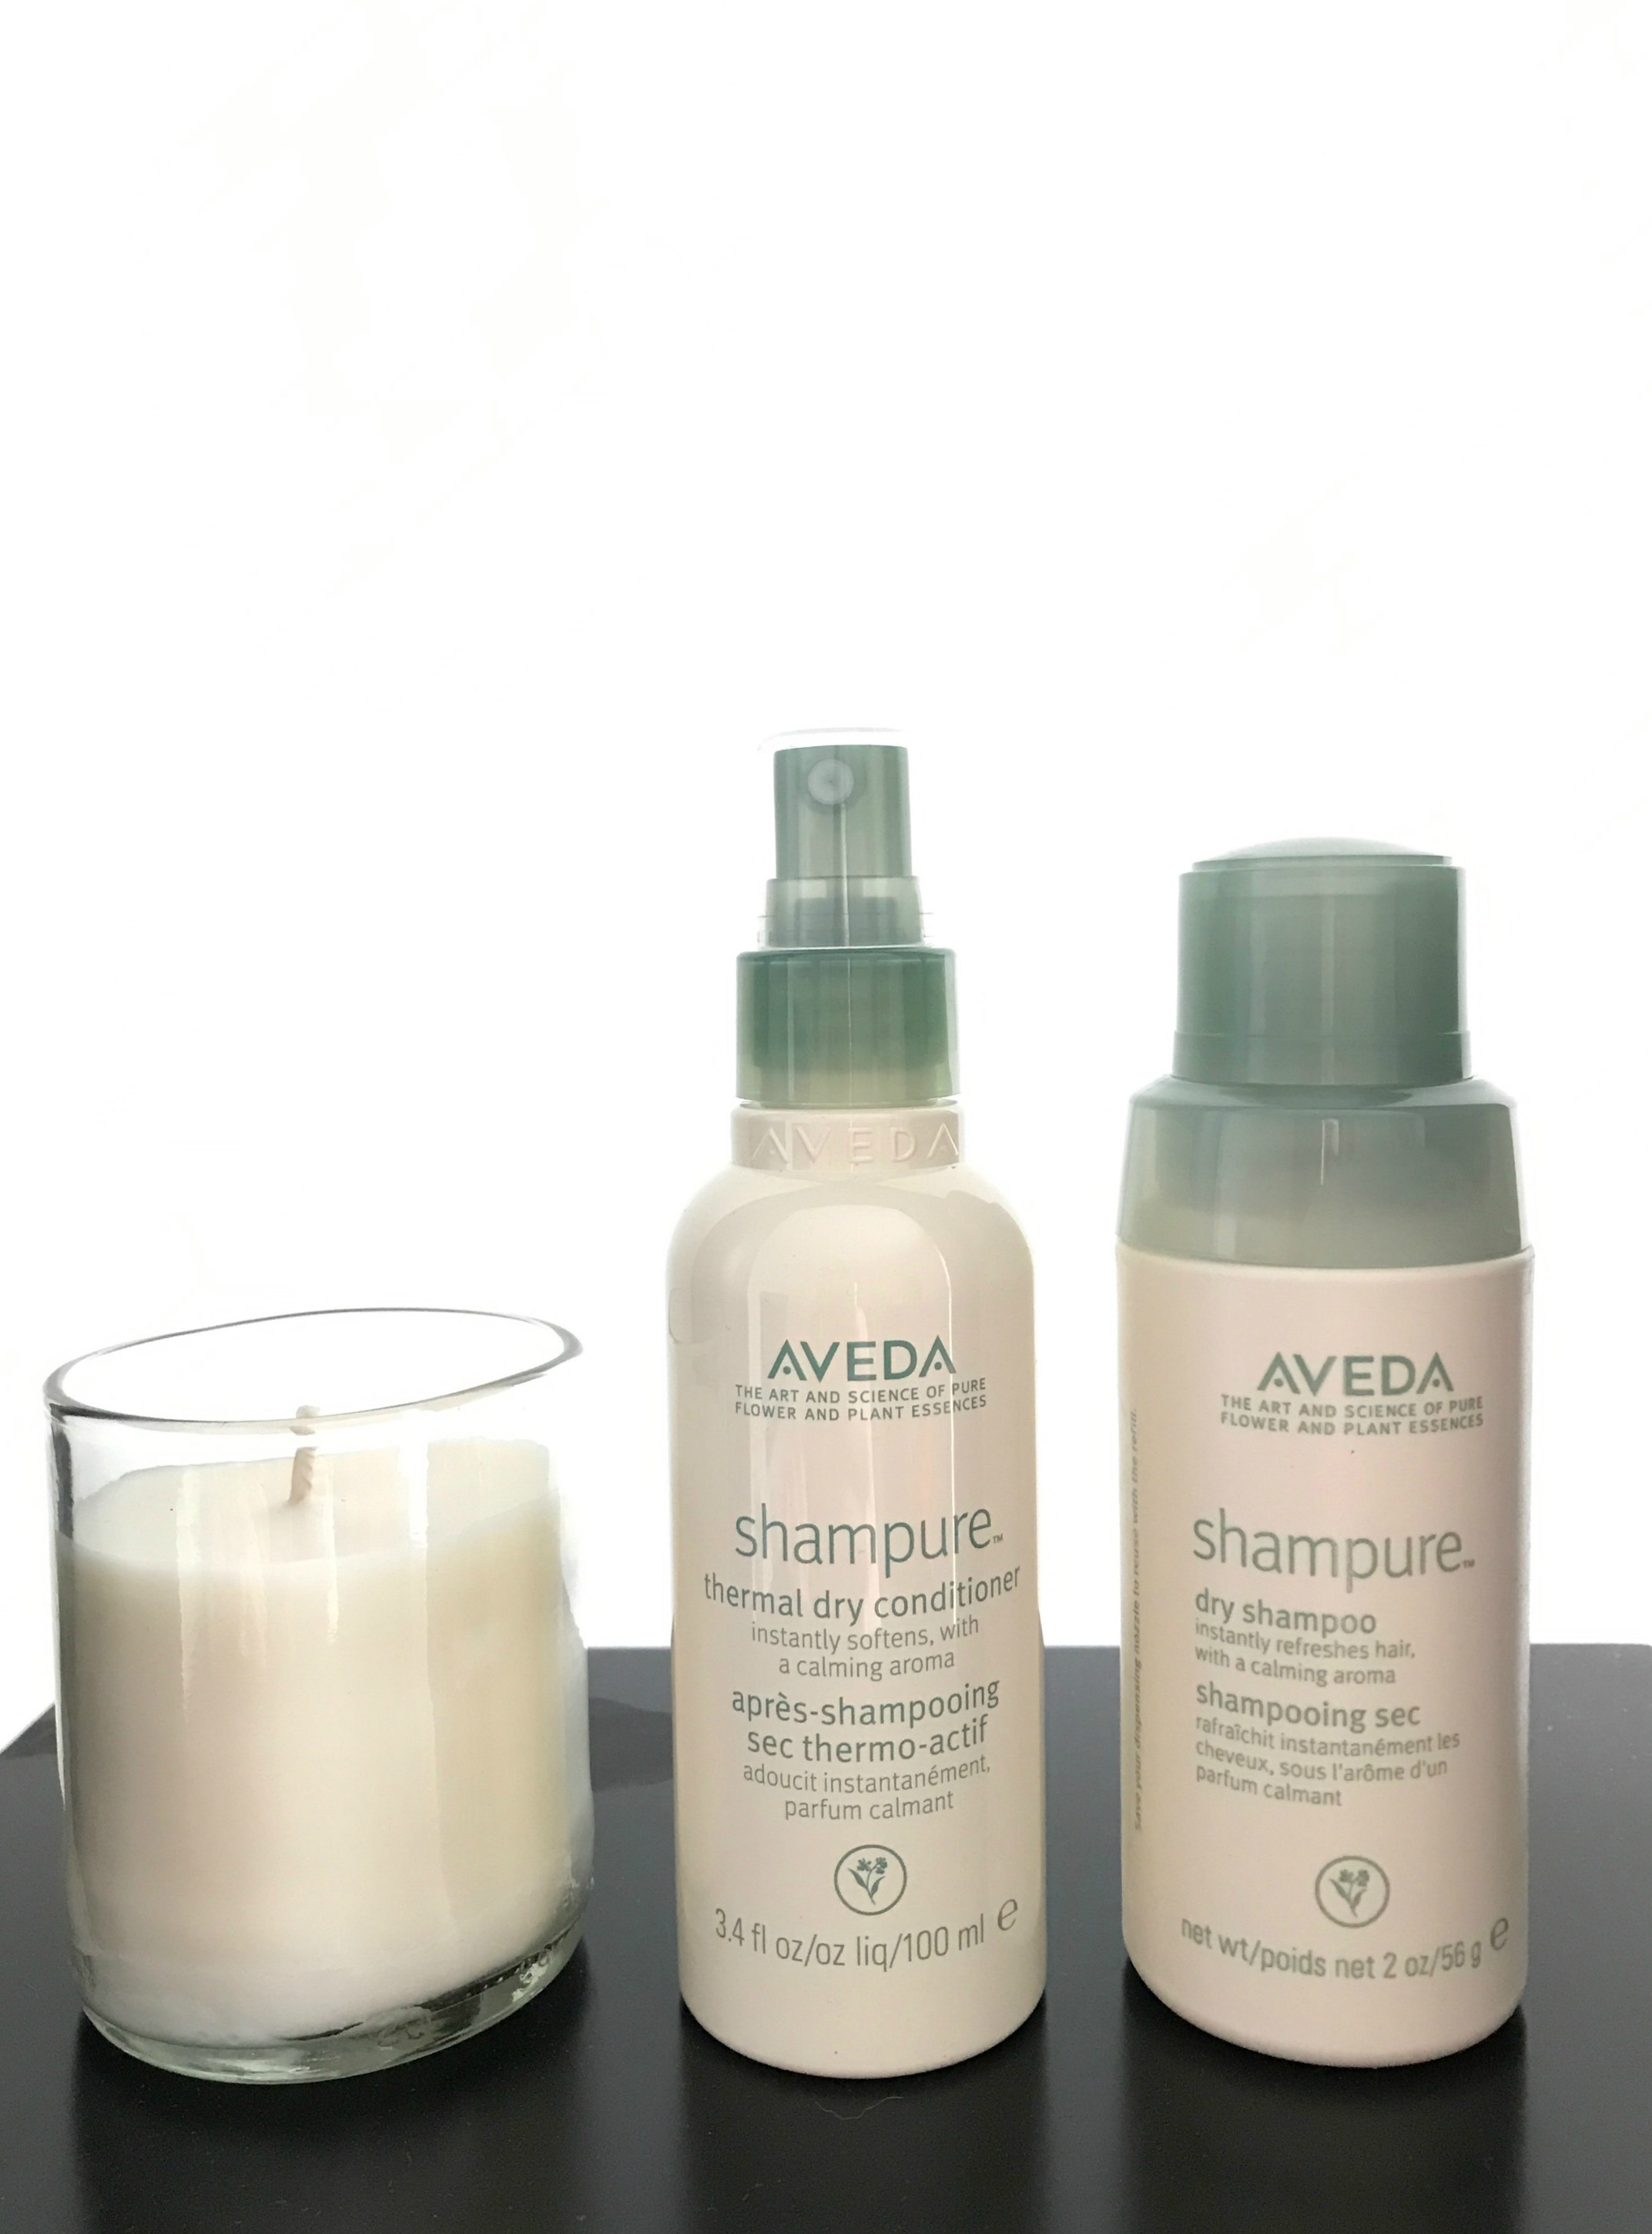 aveda shampure dry shampoo and conditioner